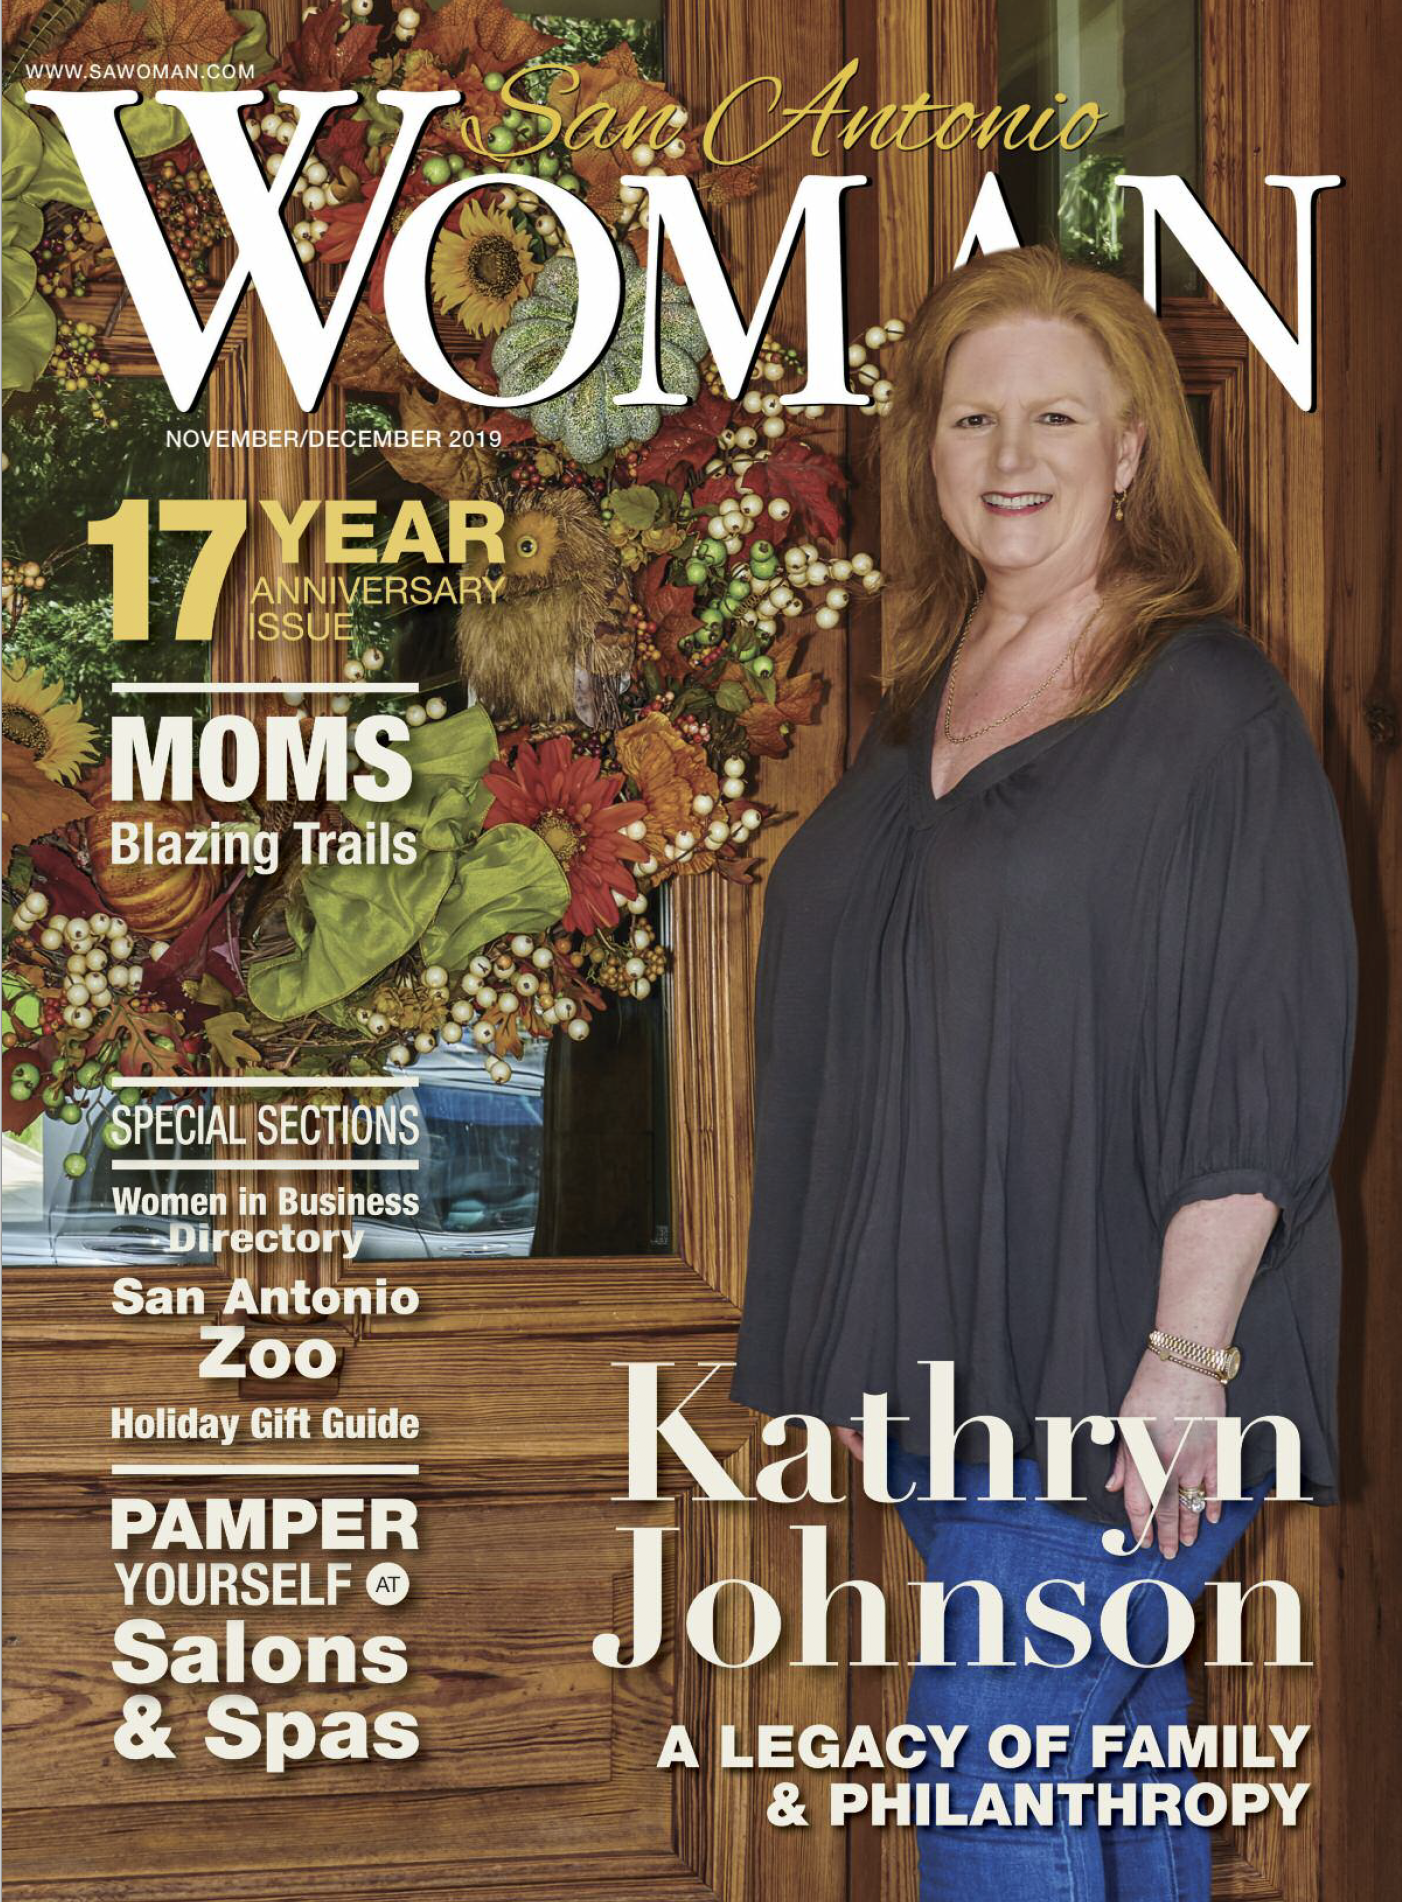 Cover photo for San Antonio Woman magazine